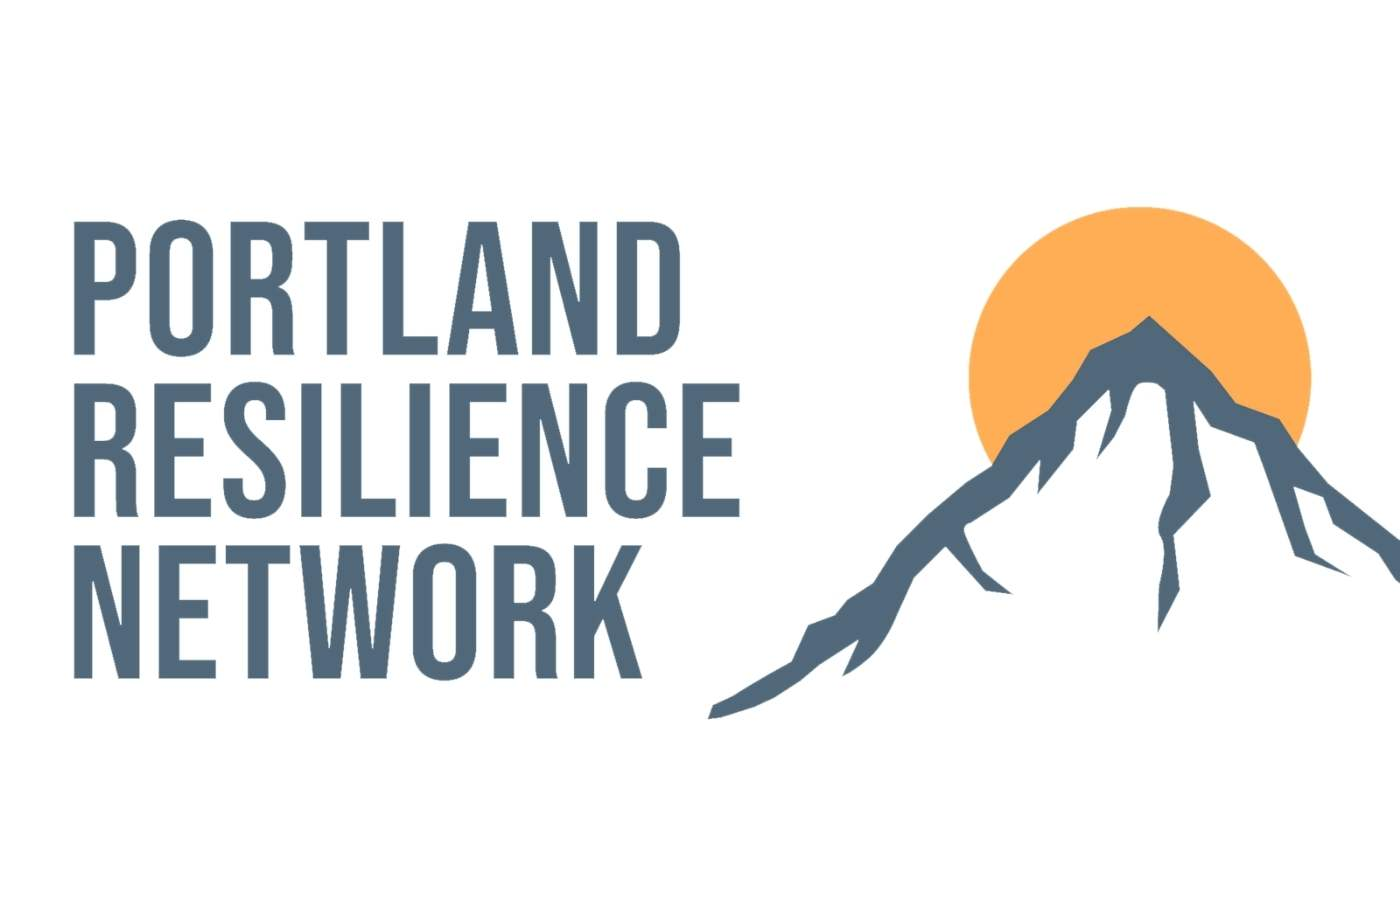 Portland Resilience Network